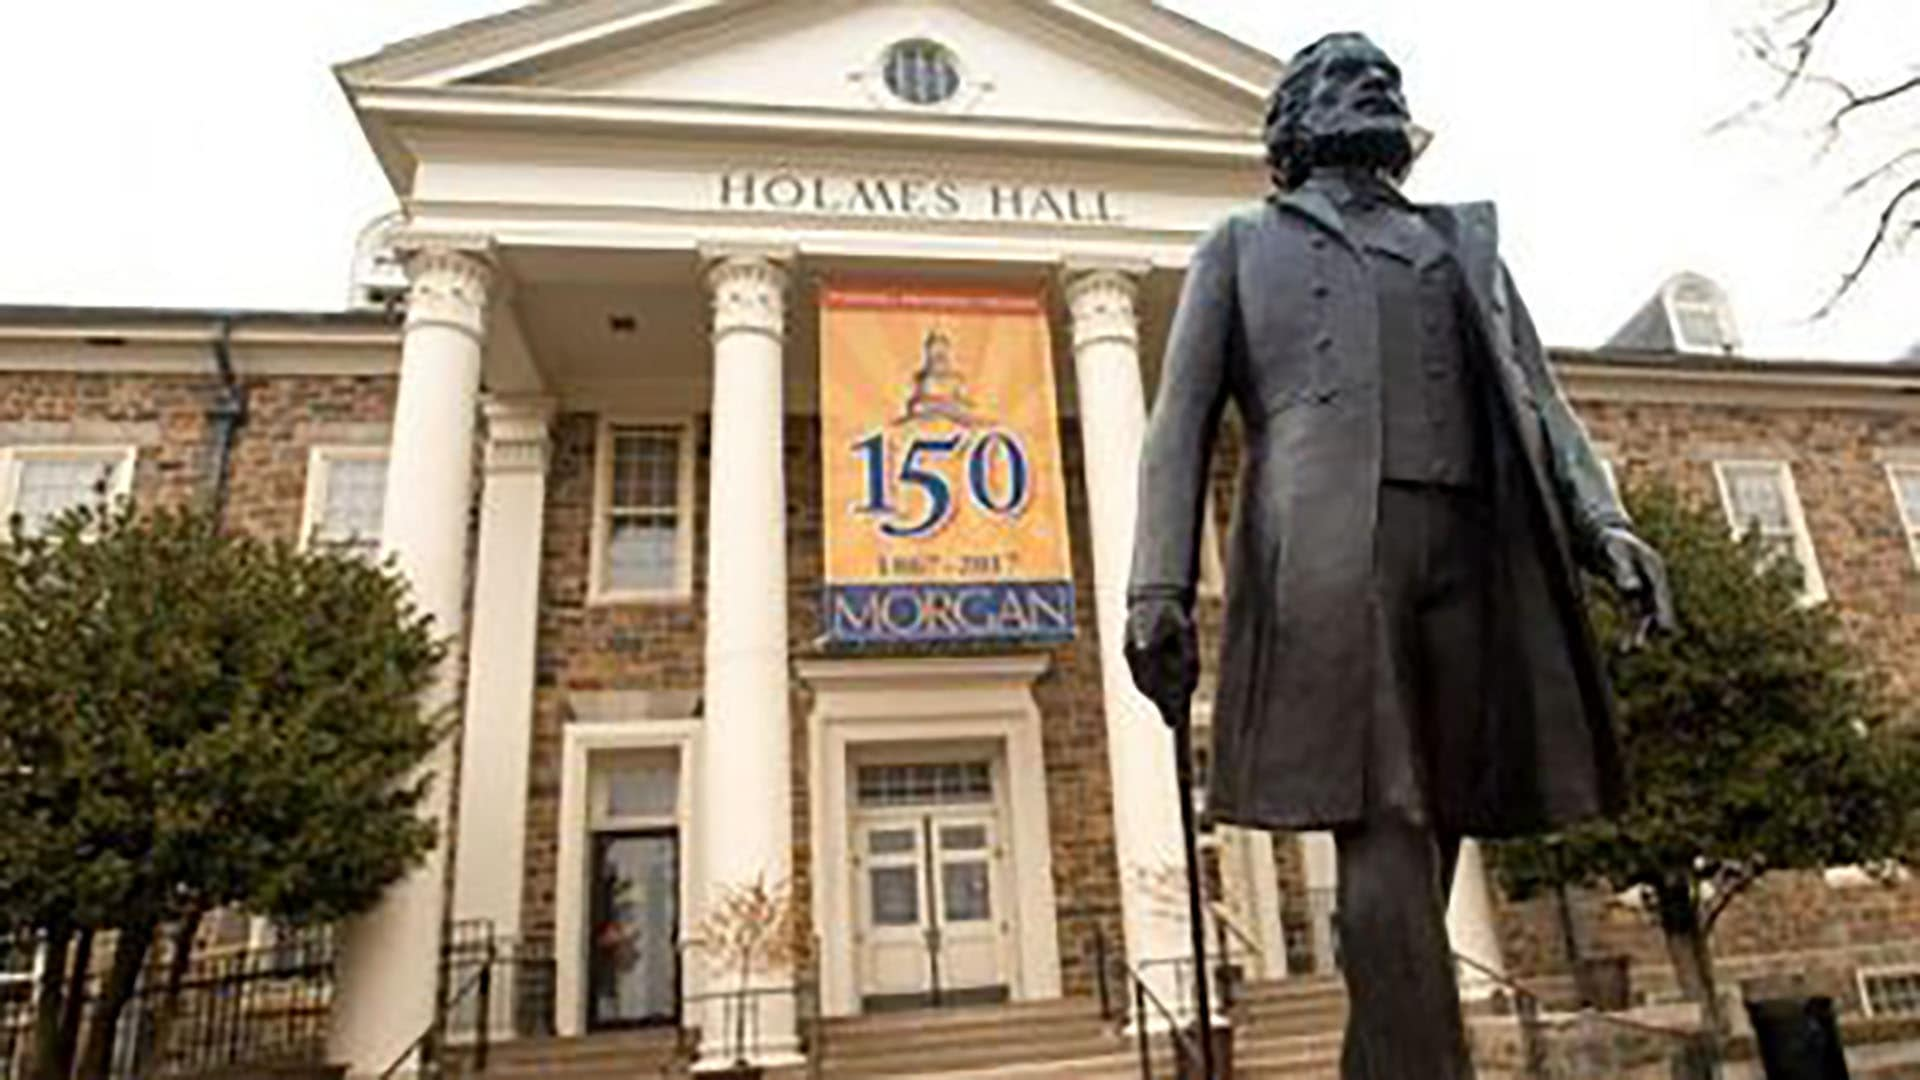 Maryland lawmakers approve $577M to settle HBCU lawsuit - TheGrio